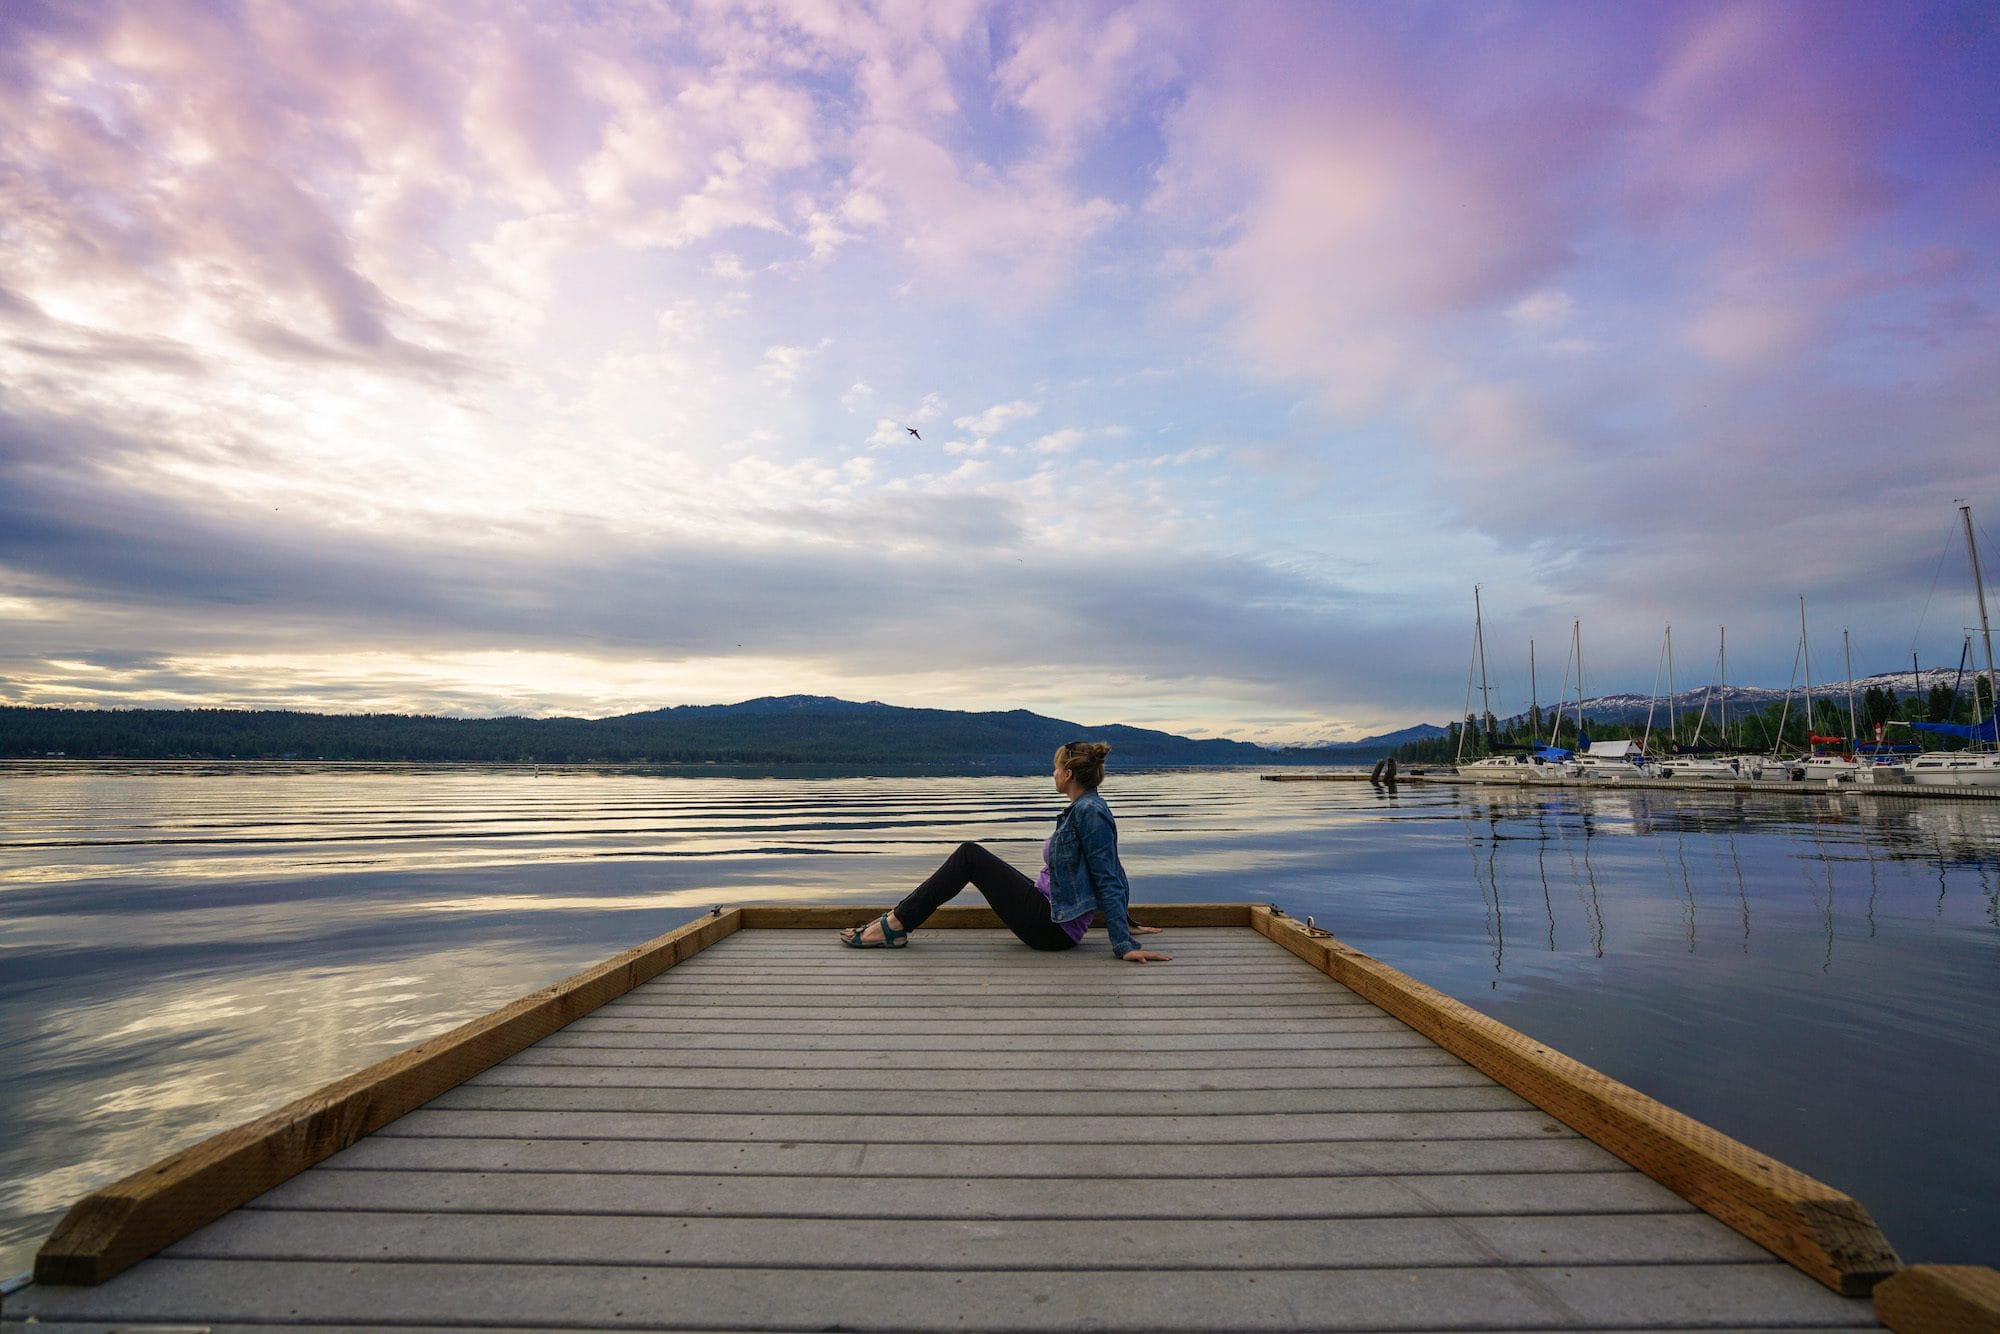 Planning on visiting McCall, Idaho for an adventure-packed trip? Check out our favorite things to do in McCall, Idaho for an outdoor enthusiast vacation.